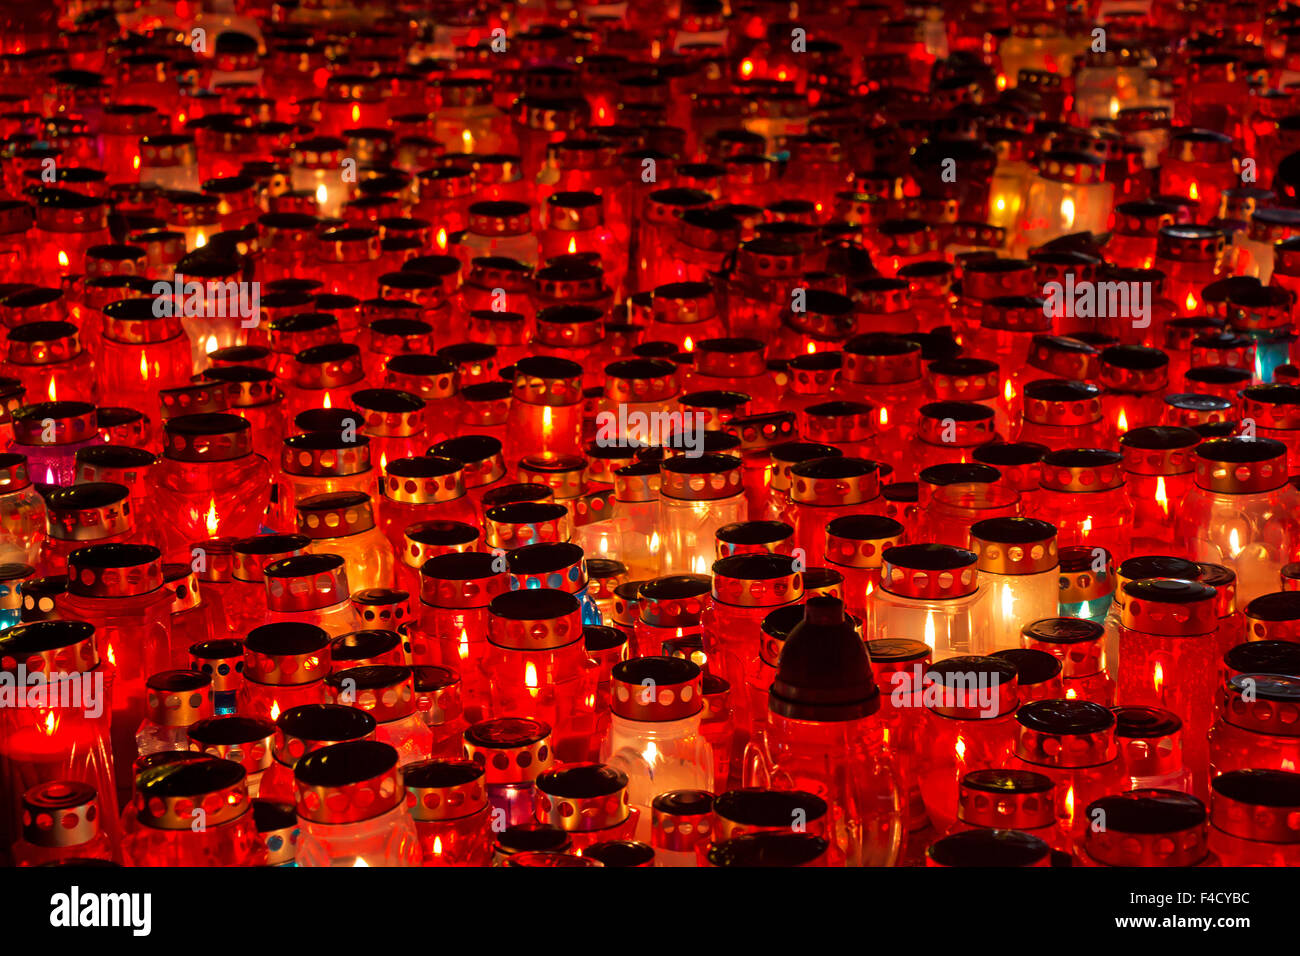 A lot of Candles Burning At a Cemetery During All Saints Day - Stock Image